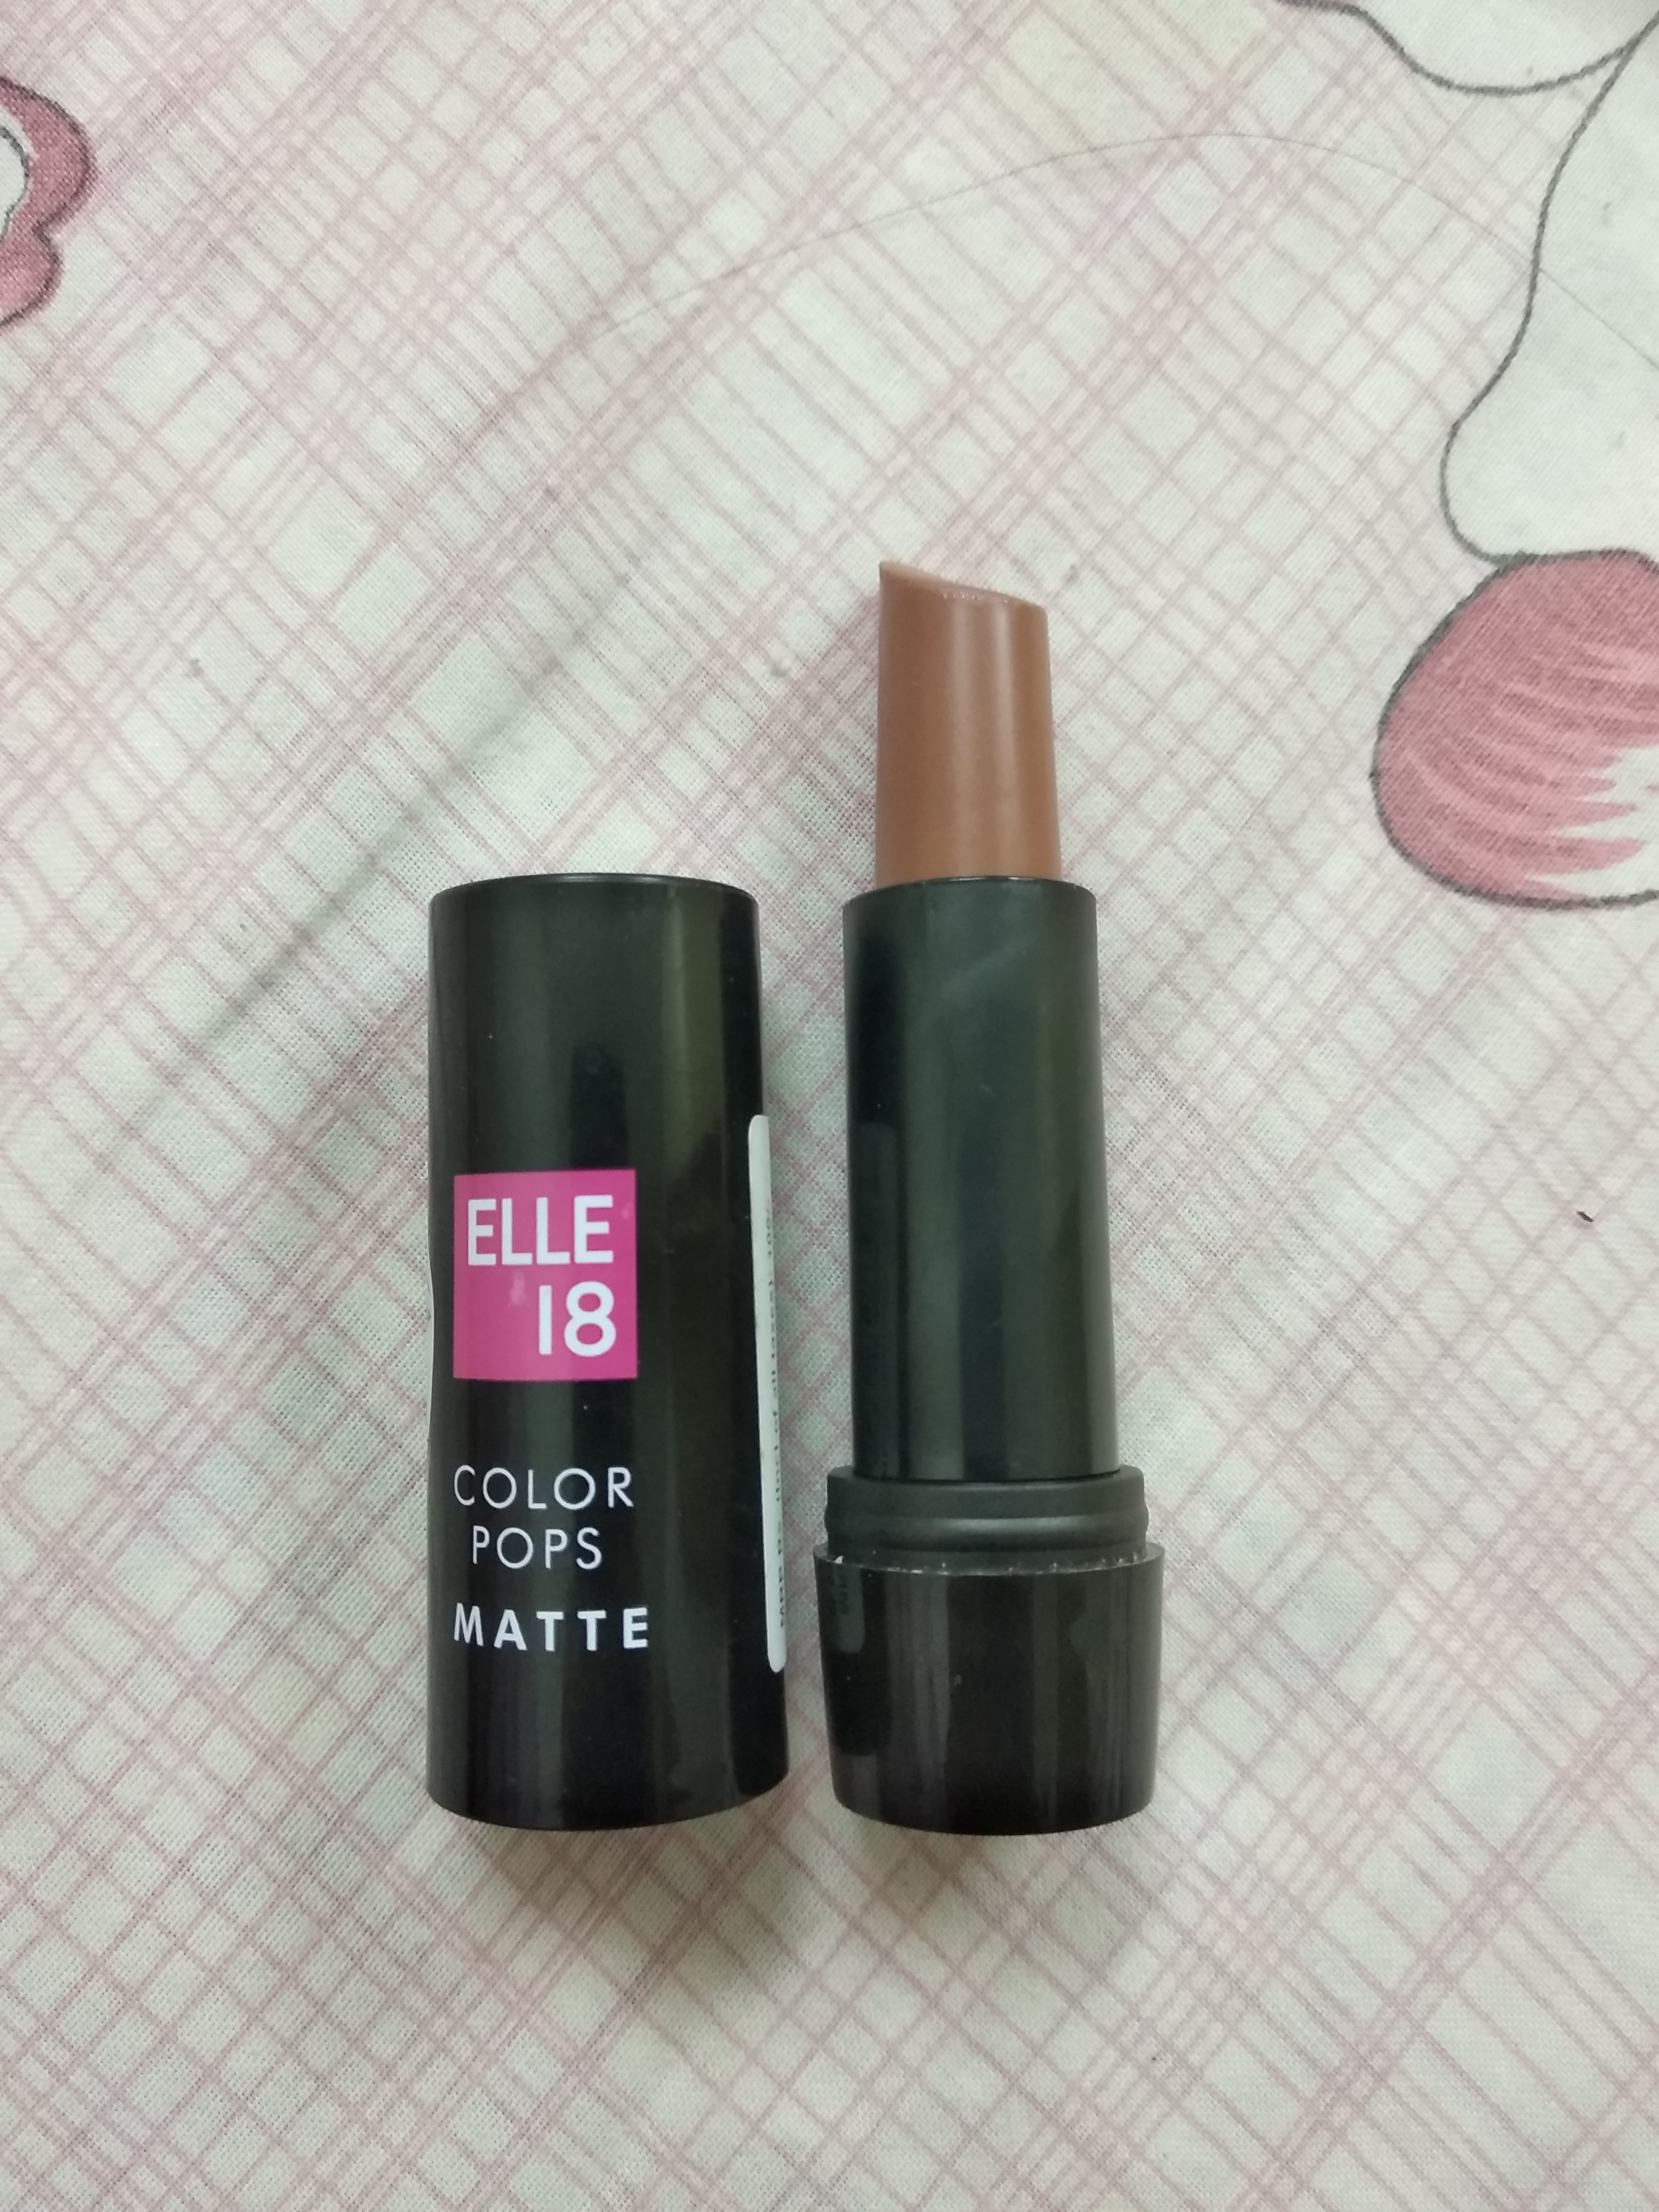 Elle 18 Color Burst Lipstick pic 2-Good product-By nayaab_petiwala